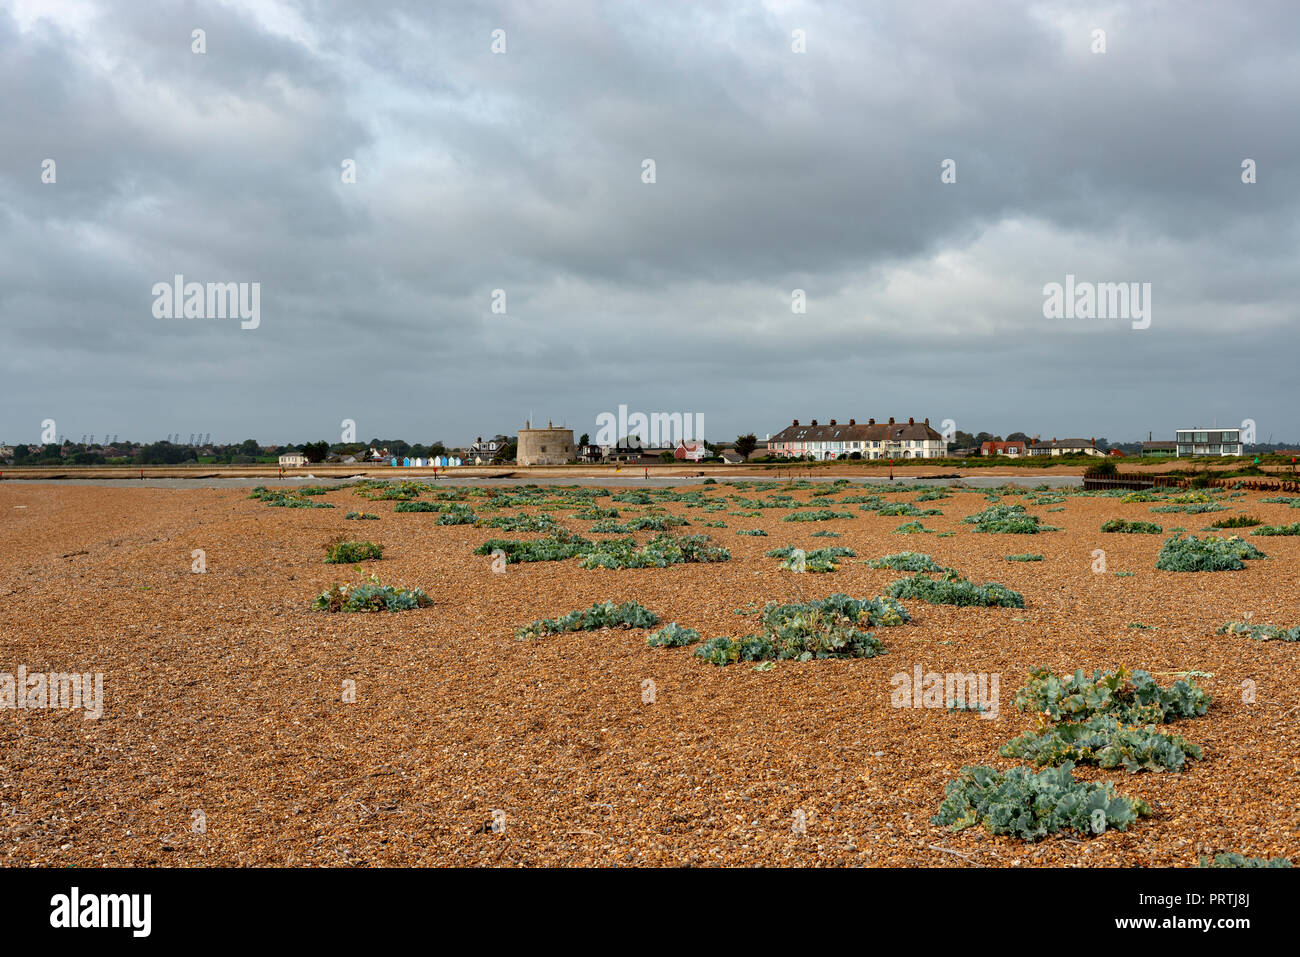 Seakale growing on the beach beside the river Deben estuary, Bawdsey Ferry, Suffolk, UK. - Stock Image